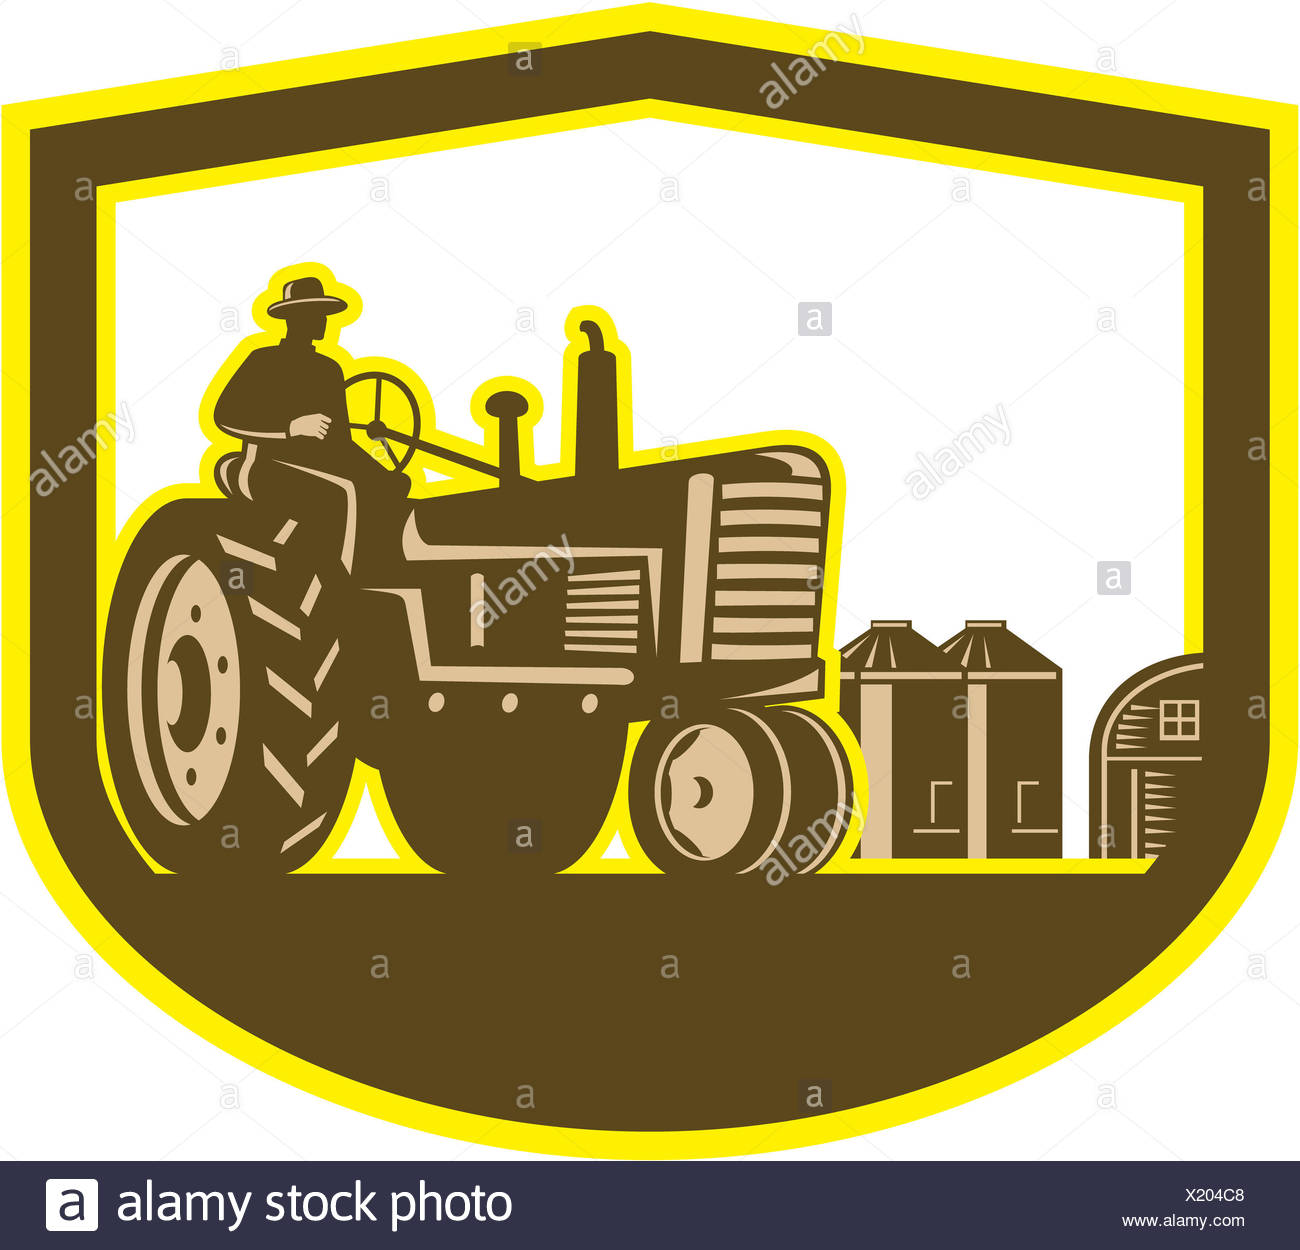 Illlustration Of A Farmer Worker Driving A Vintage Tractor